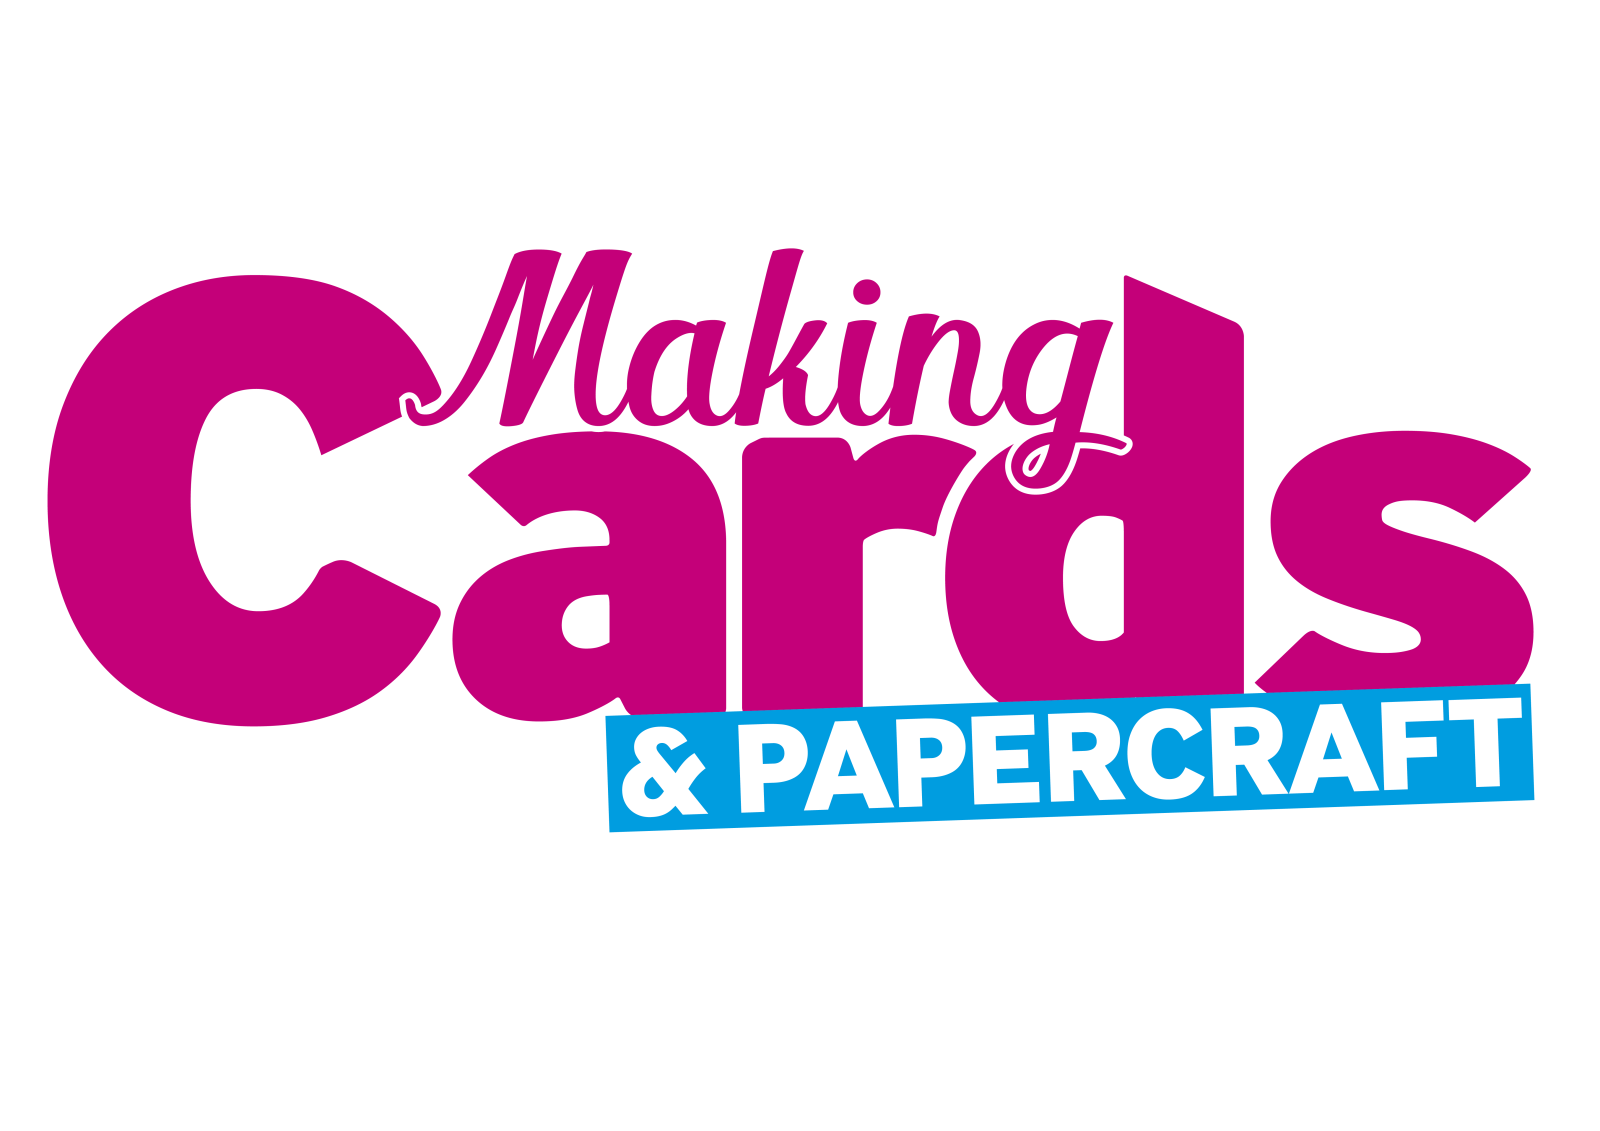 Making Cards & Papercraft logo